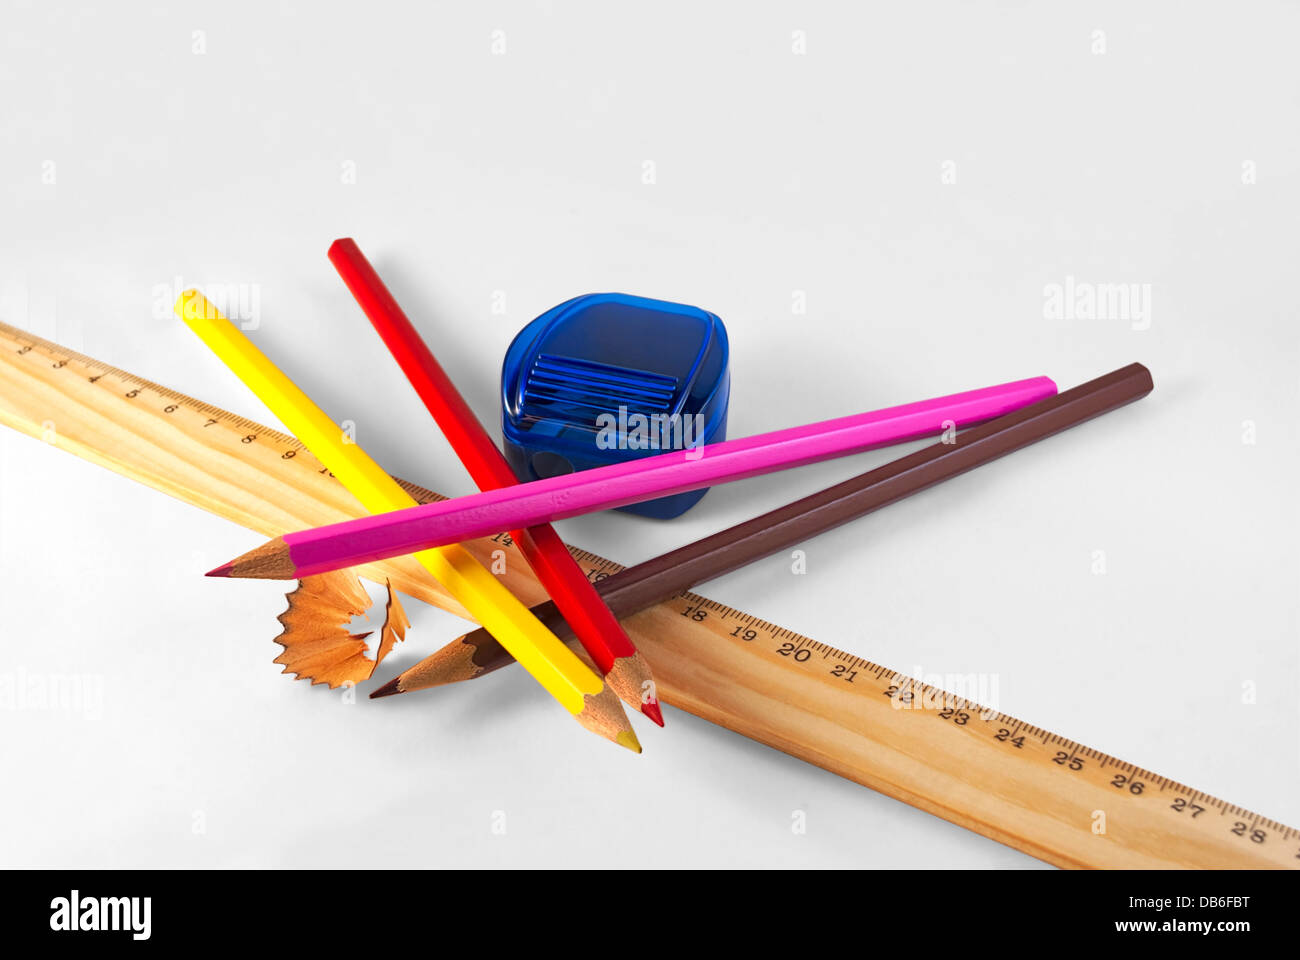 Stationery for drawing on a white background. - Stock Image